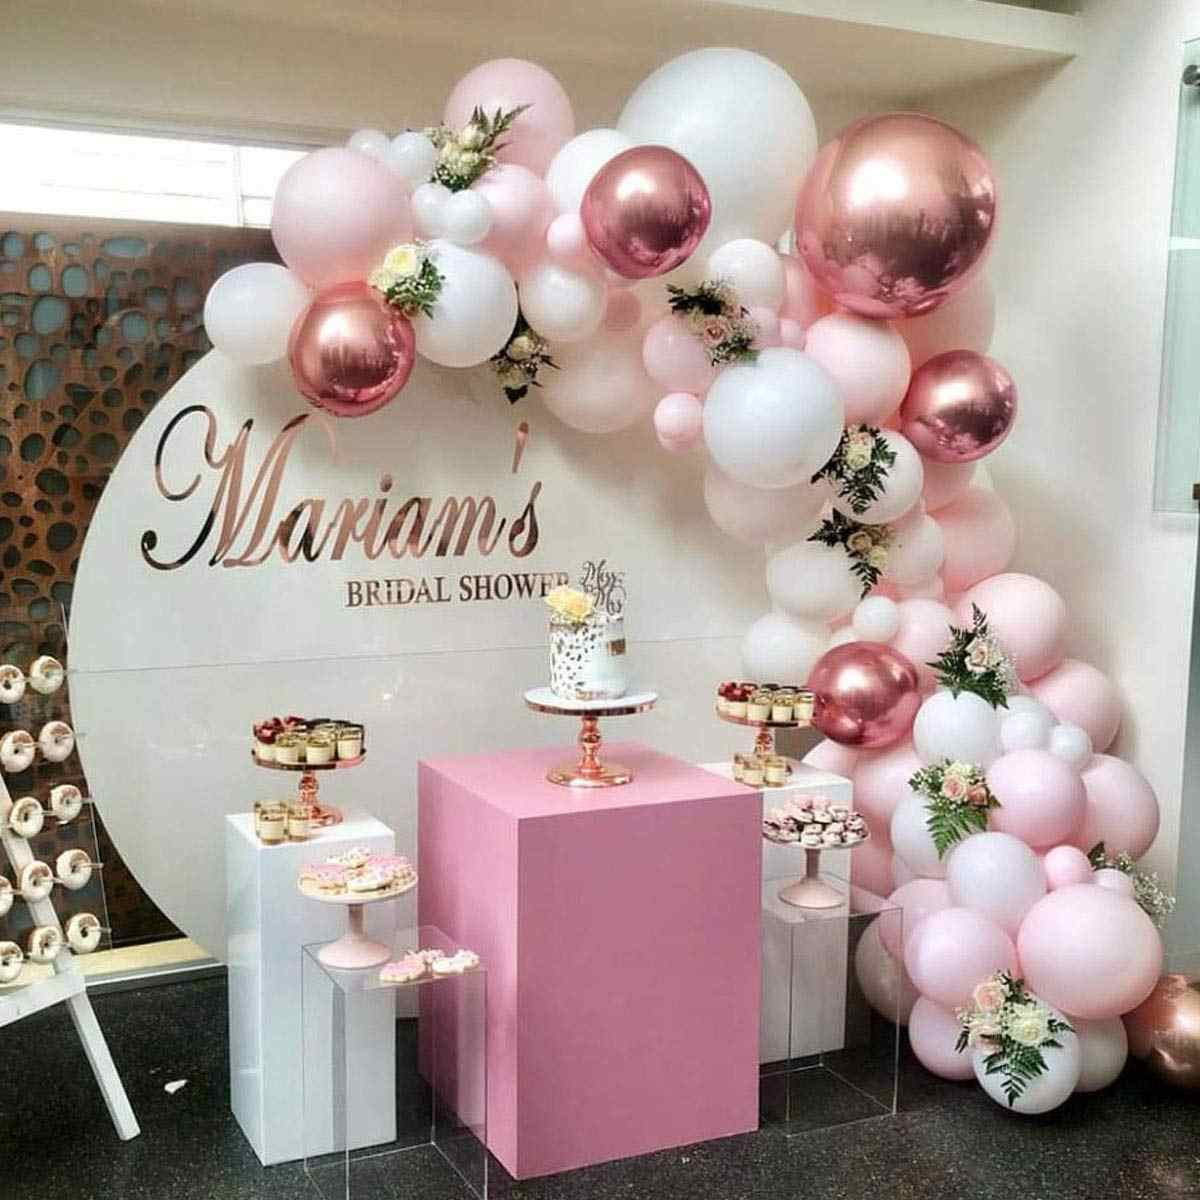 101 DIY Balloons Garland Arch Kit Rose Gold Pink White Balloon for Baby Shower Bridal Shower Wedding Birthday Party Decorations